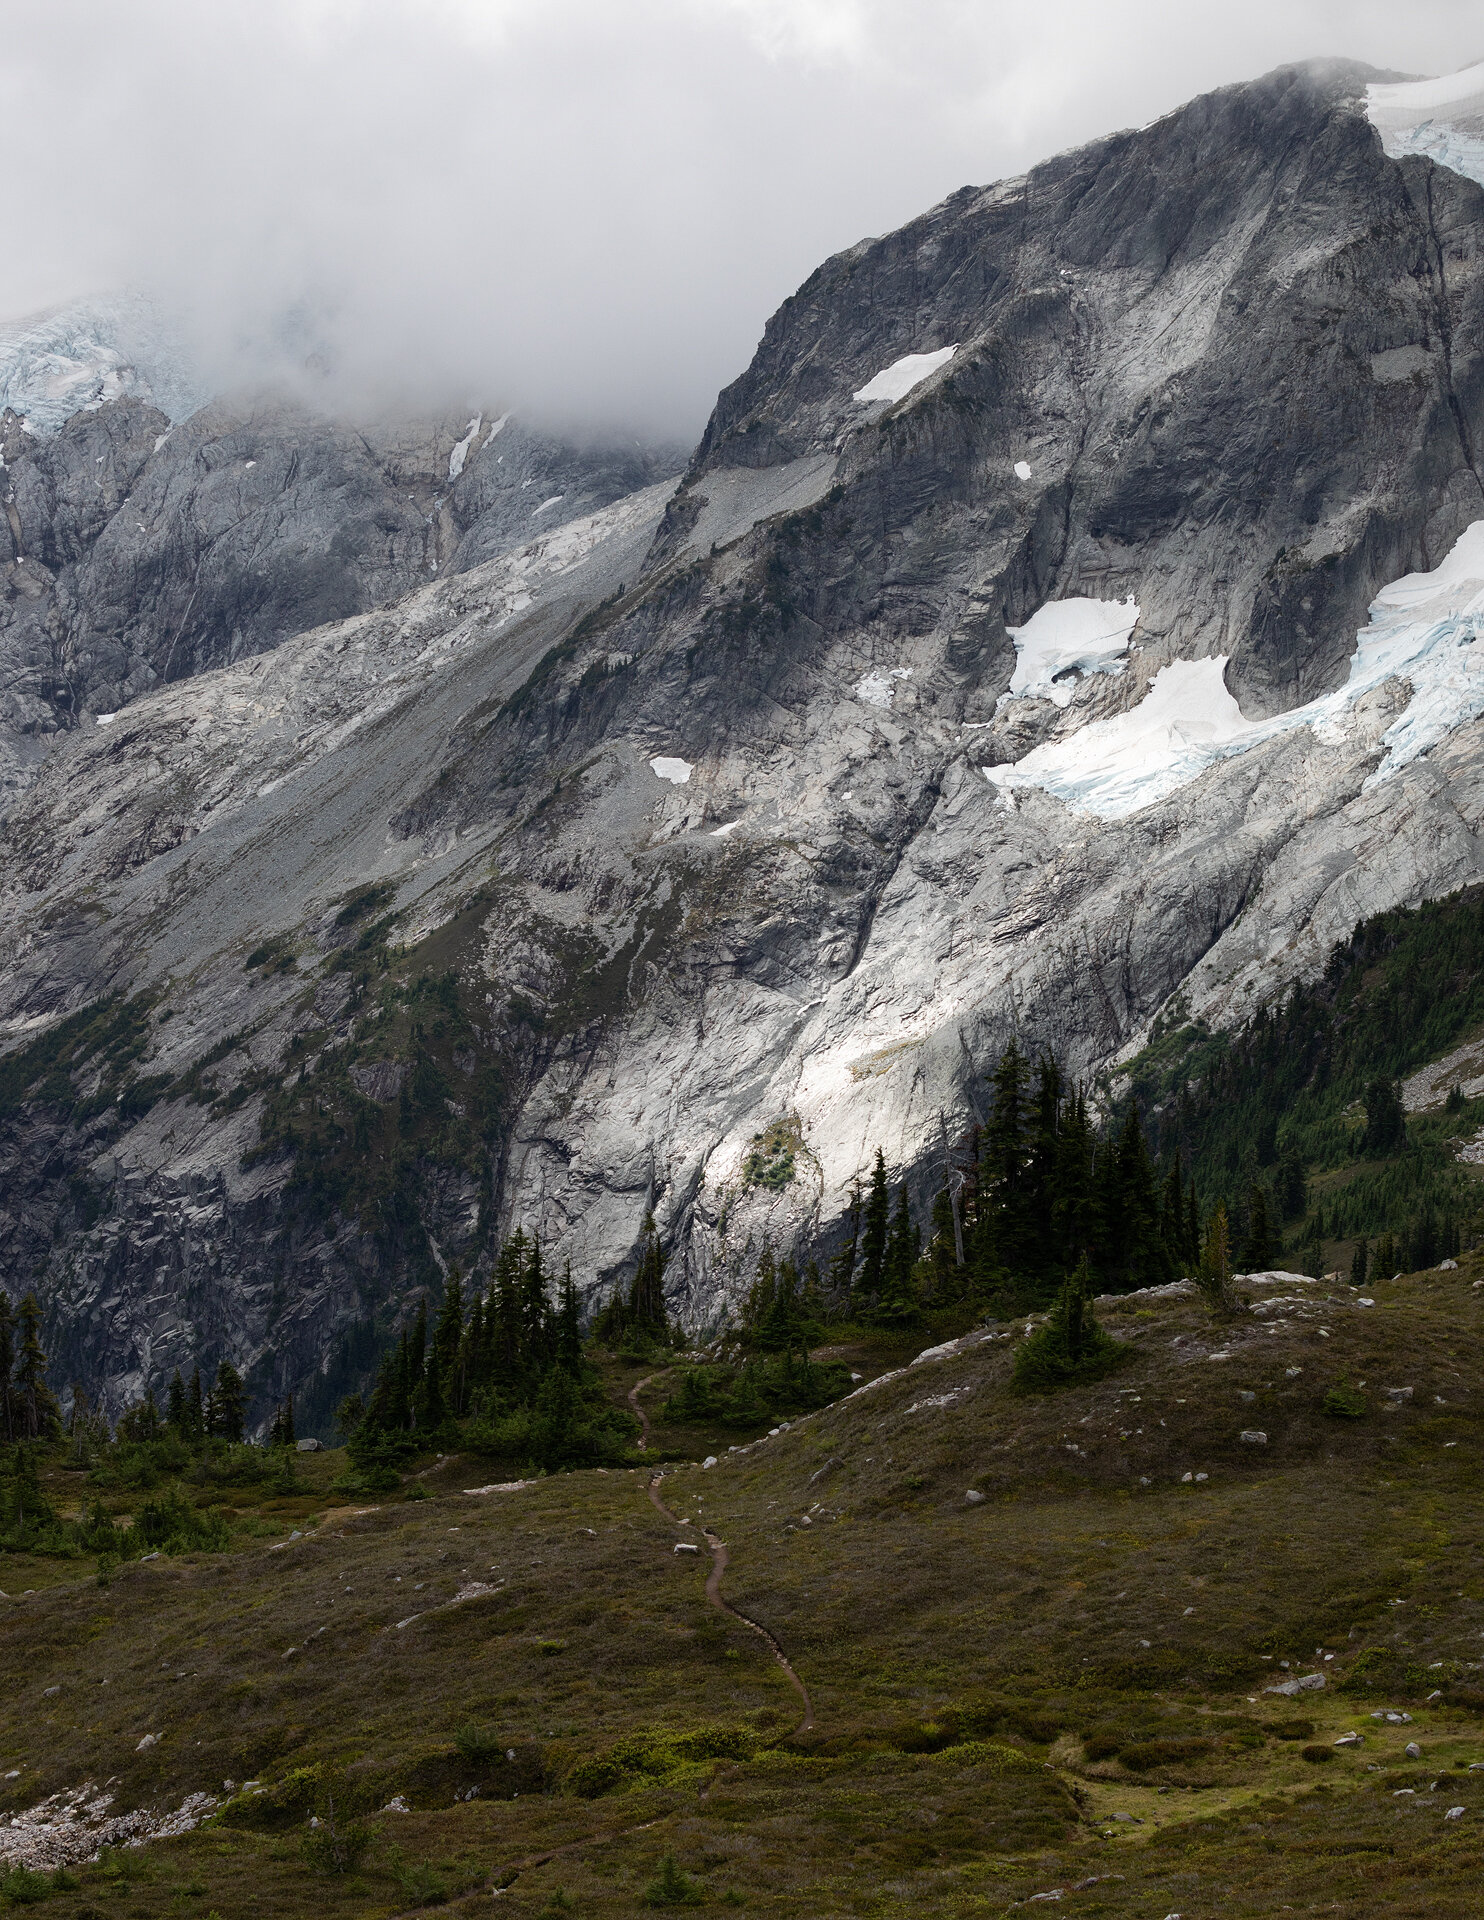 Whatcom Peak and an obscured Challenger Glacier seen from the trail